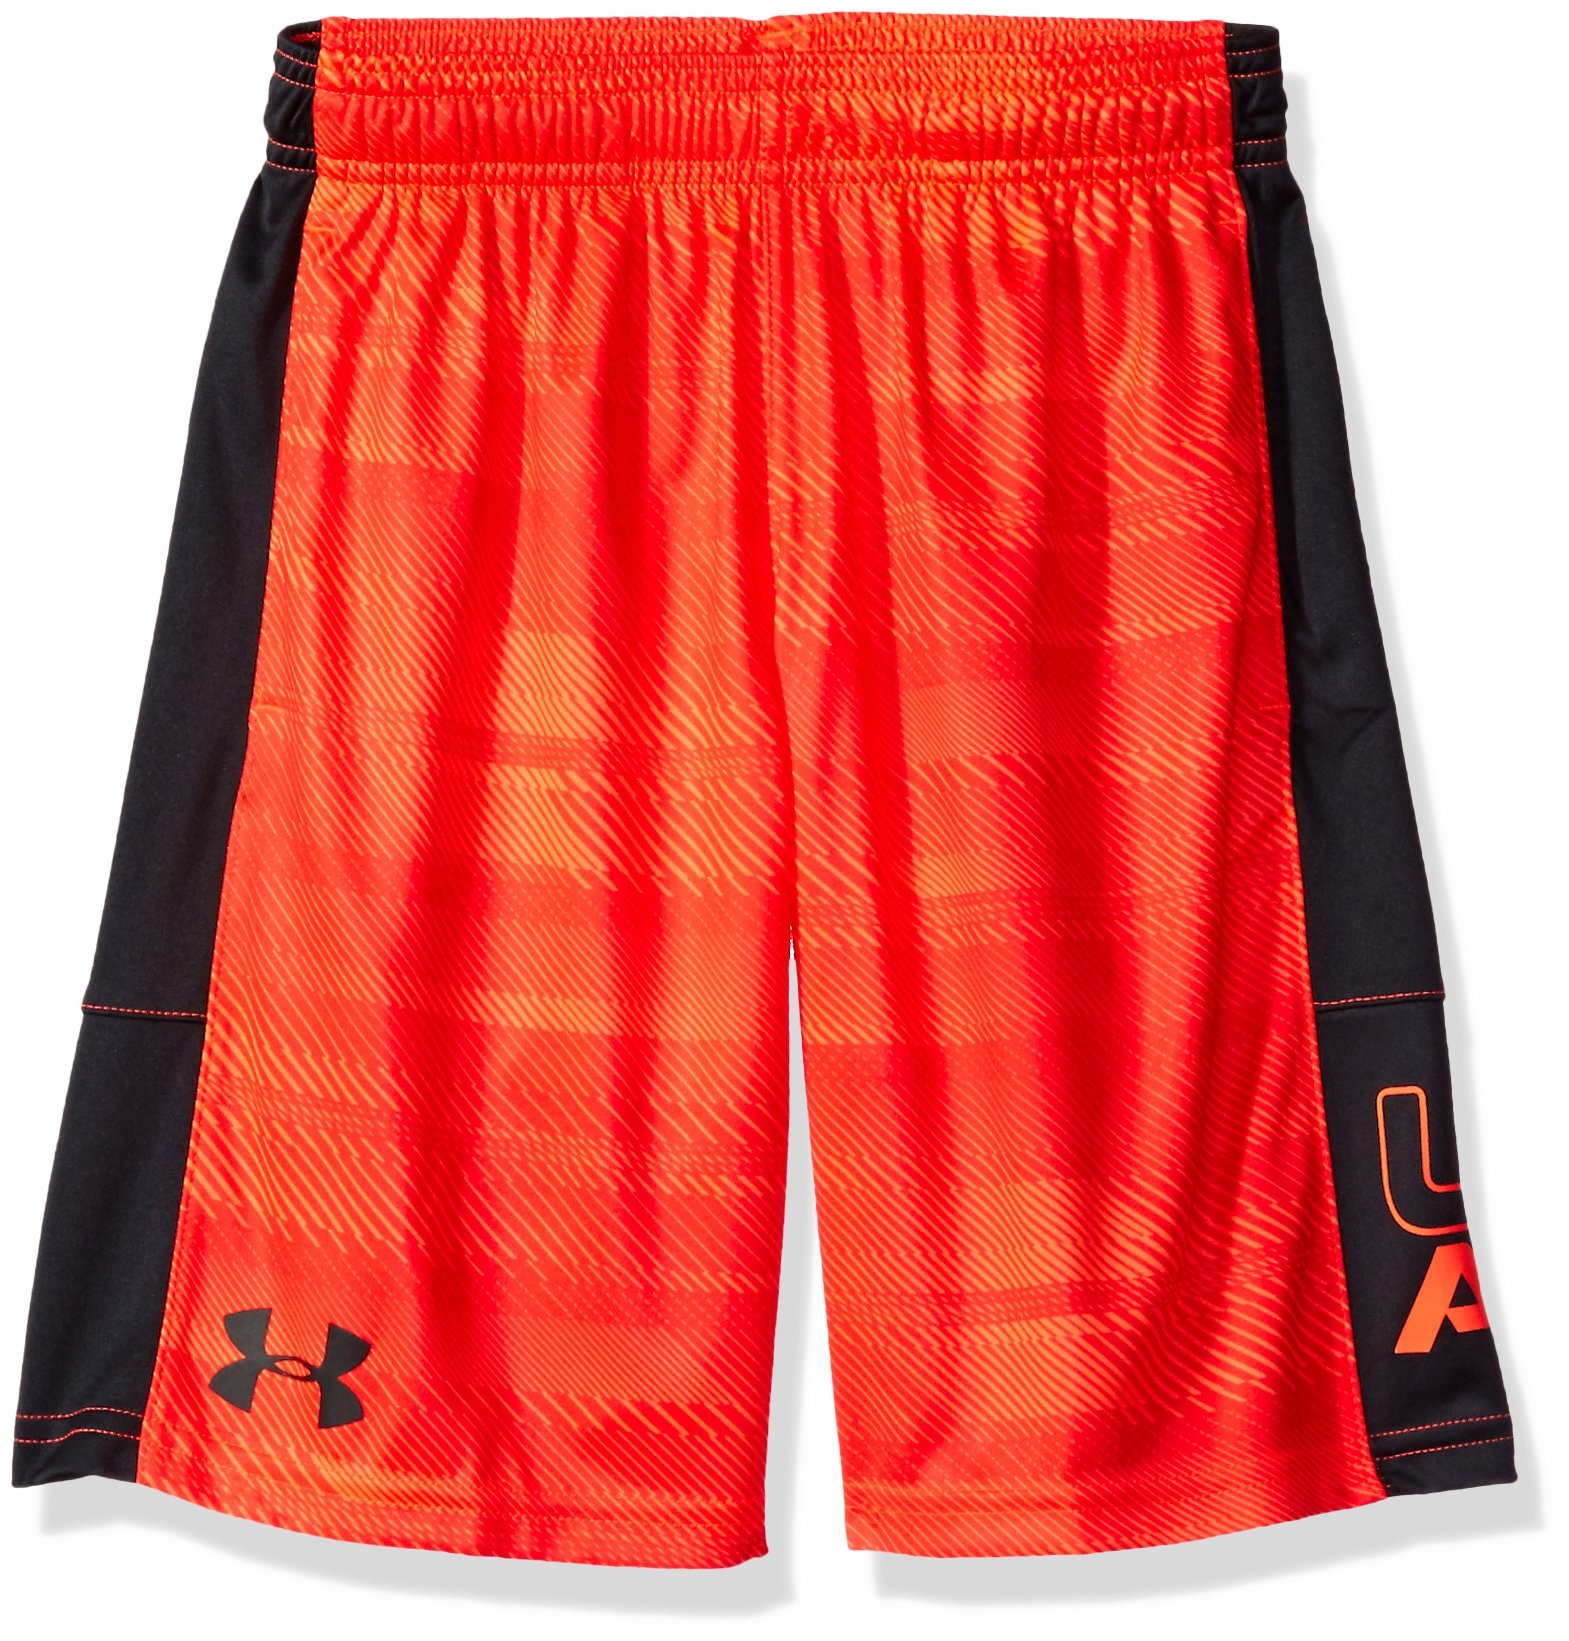 Under Armour Boys' Instinct Printed Shorts, Magma Orange /Anthracite Youth X-Small by Under Armour